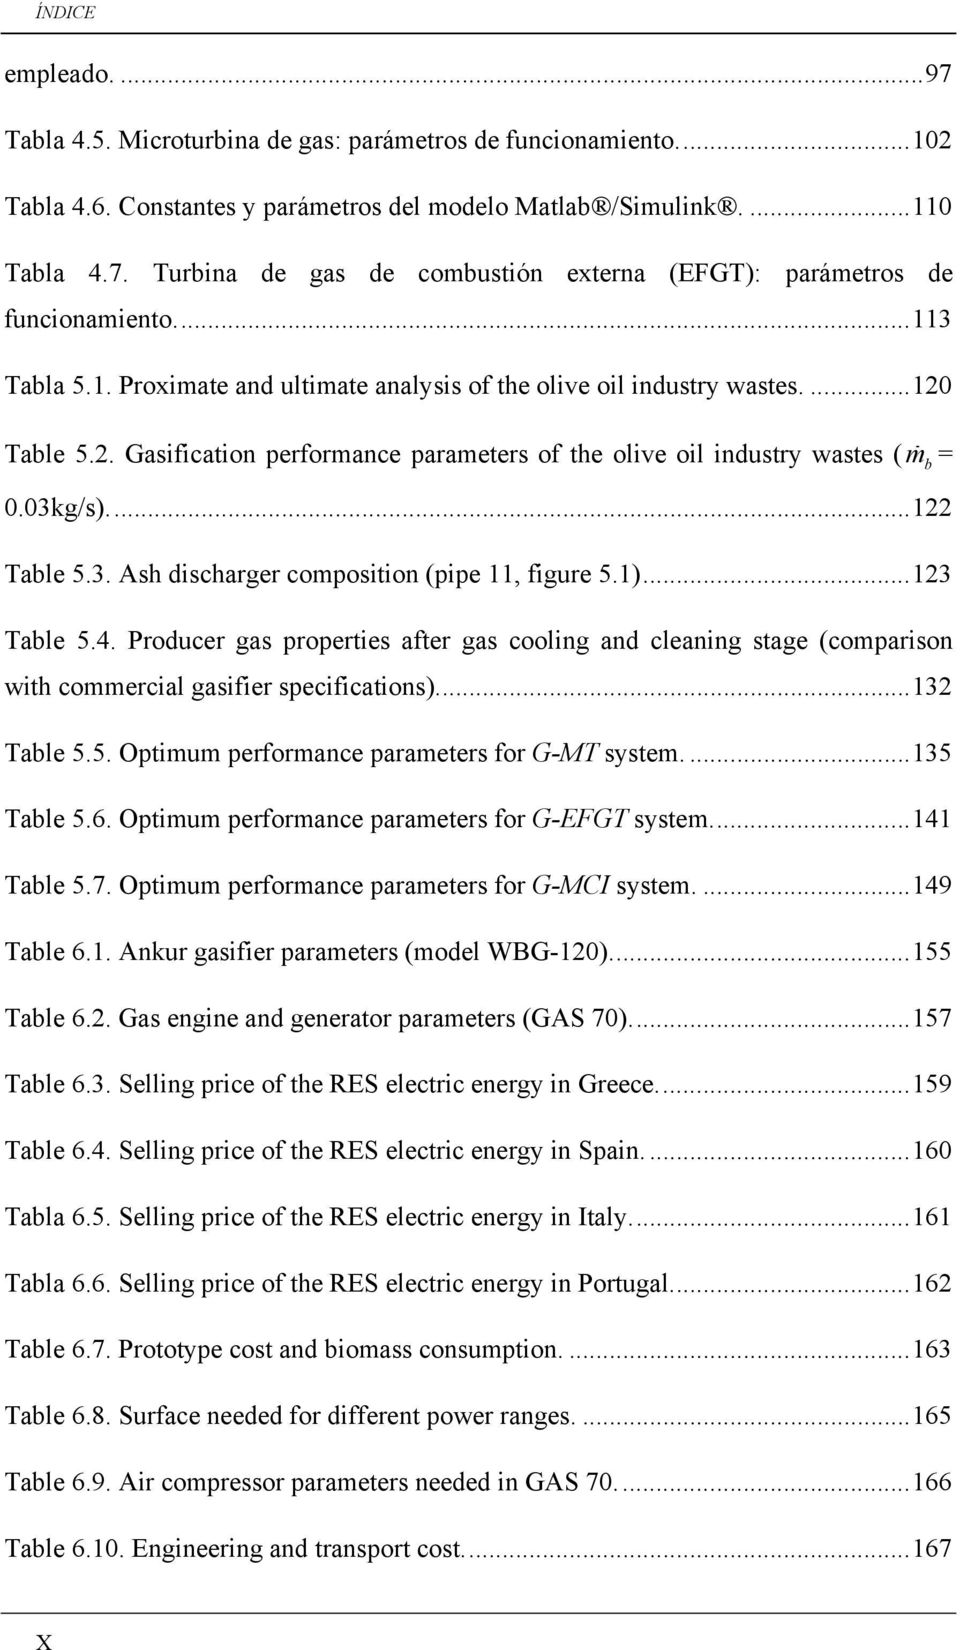 ... 122 Table 5.3. Ash discharger composition (pipe 11, figure 5.1)... 123 Table 5.4. Producer gas properties after gas cooling and cleaning stage (comparison with commercial gasifier specifications).